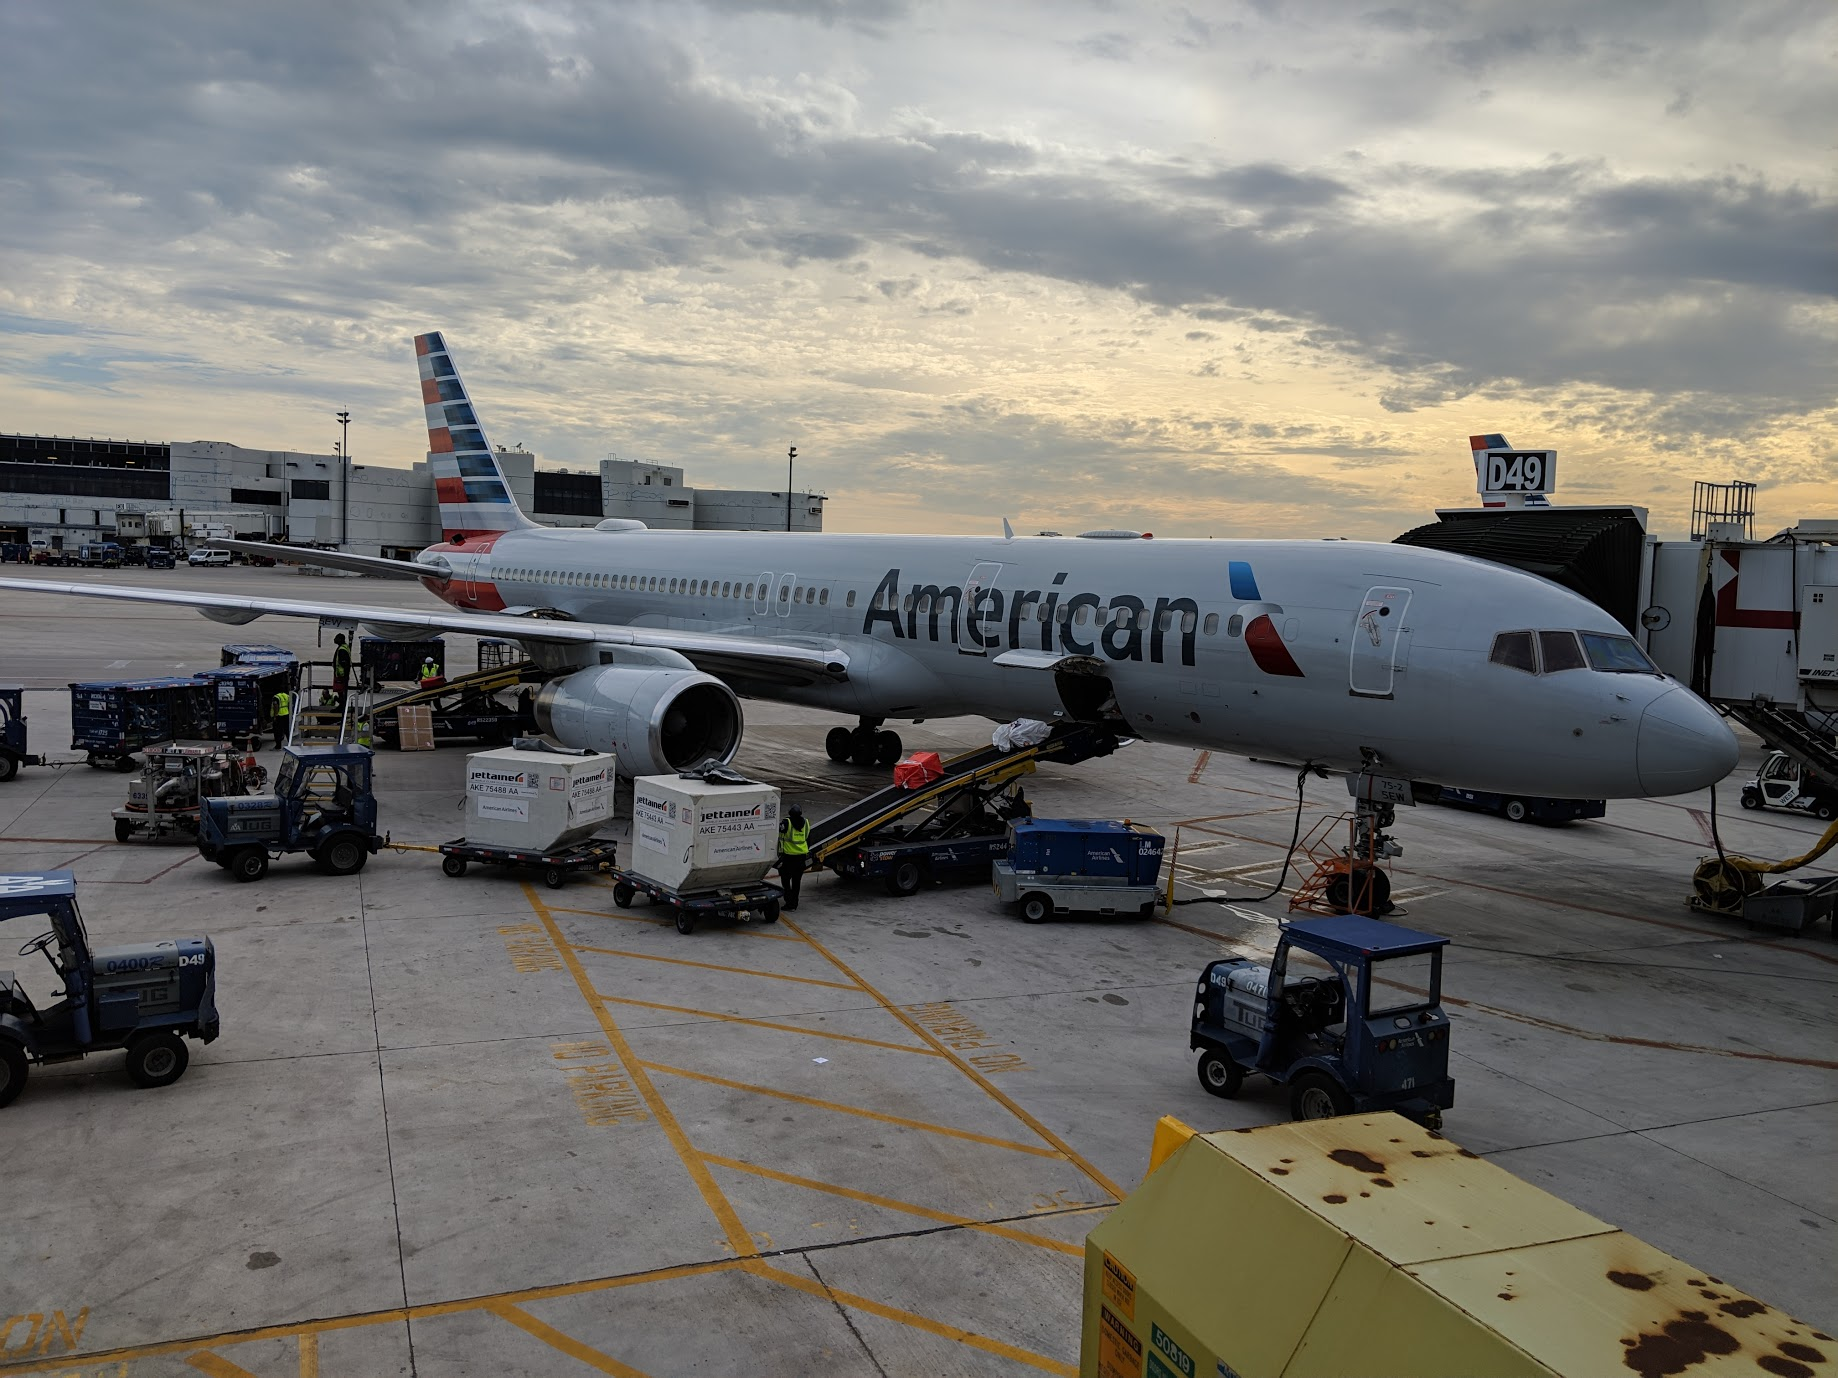 American Airlines Announces Big Increase in Service To MIA, With Up To 341 Daily Flights